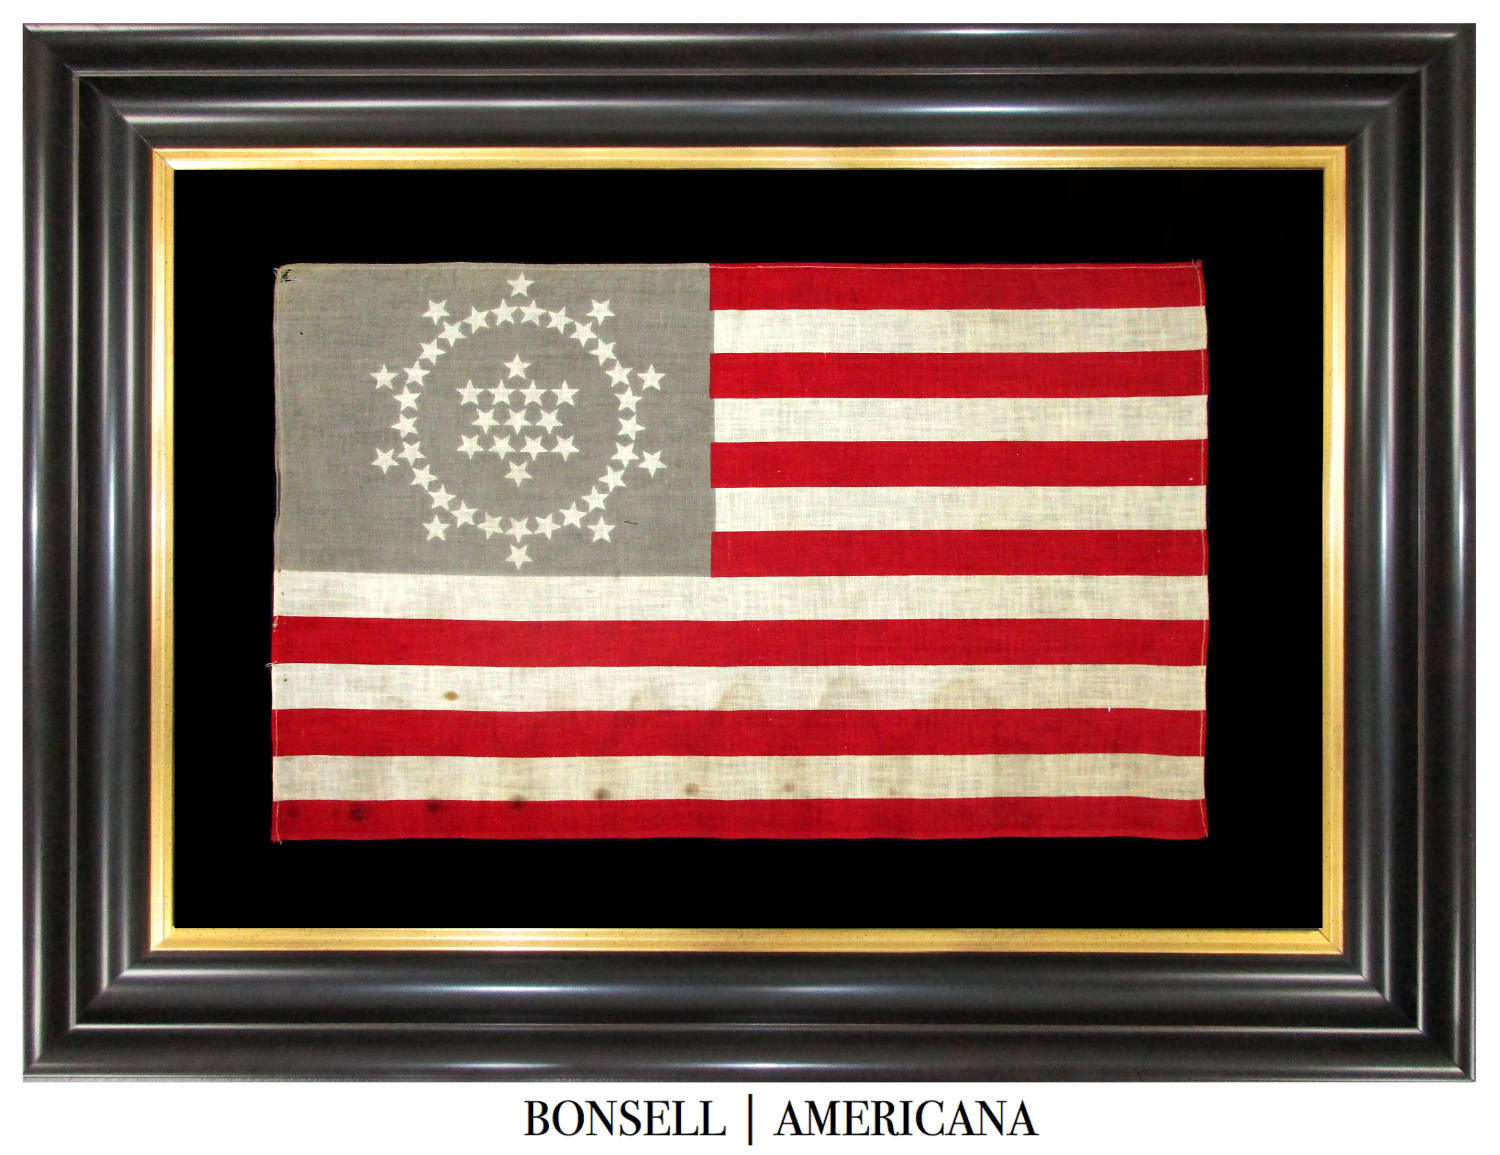 48 Star Antique American Flag with a Whipple Star Pattern